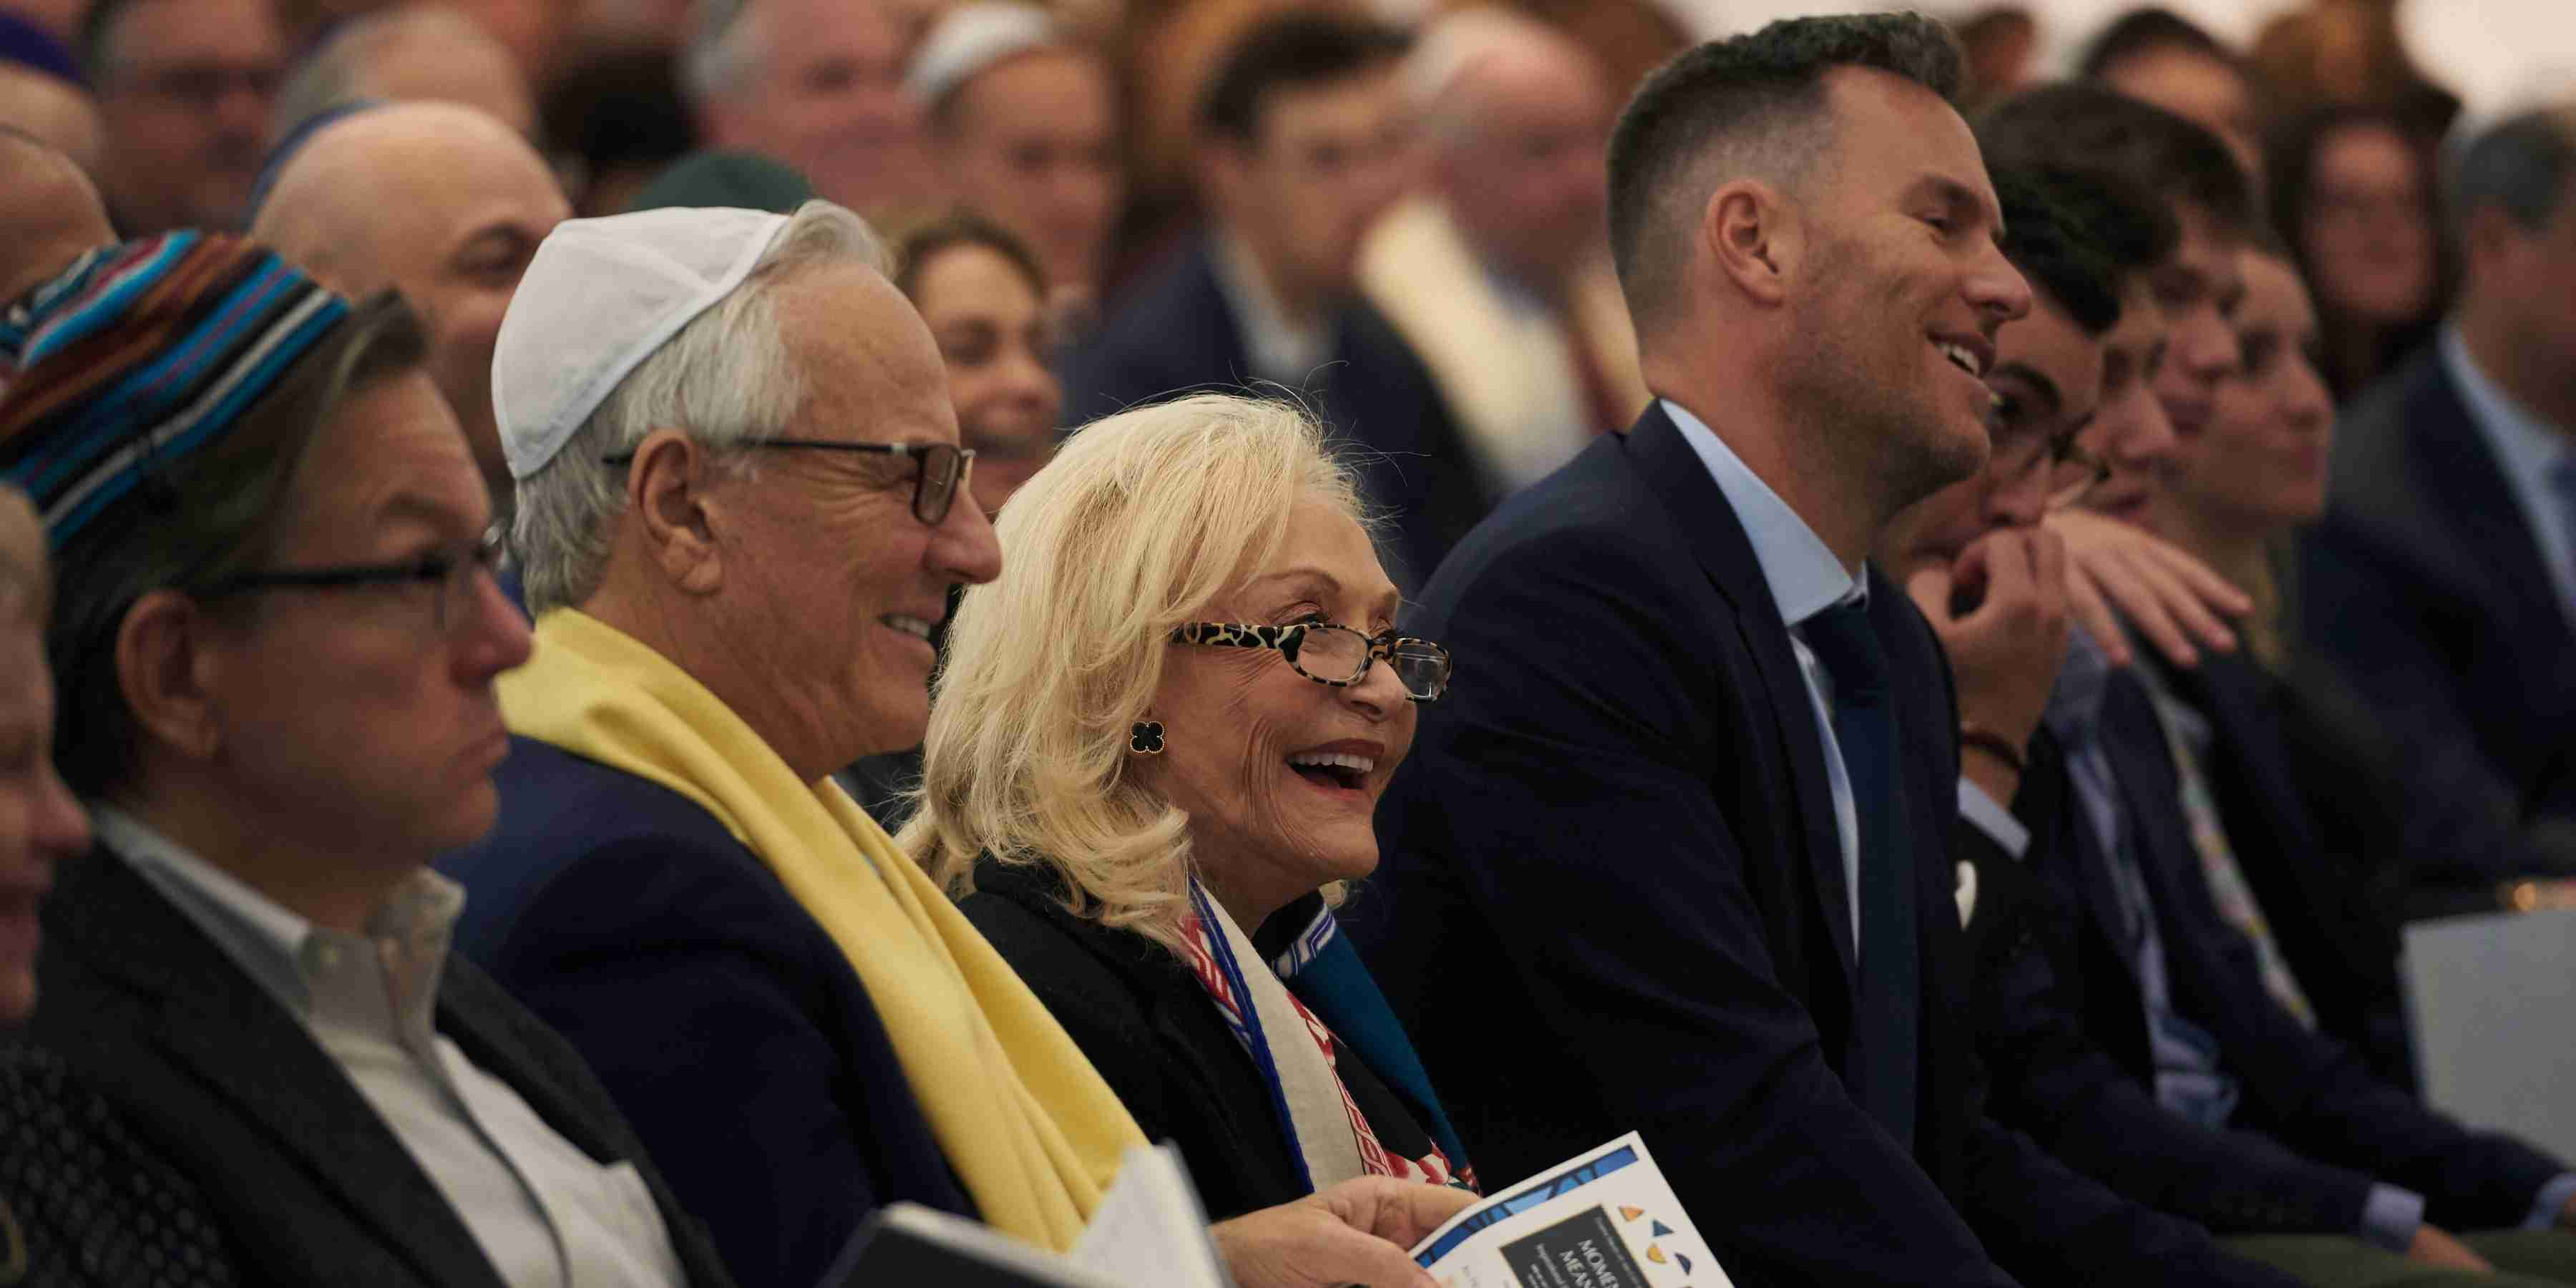 Seated row of congregants laughing